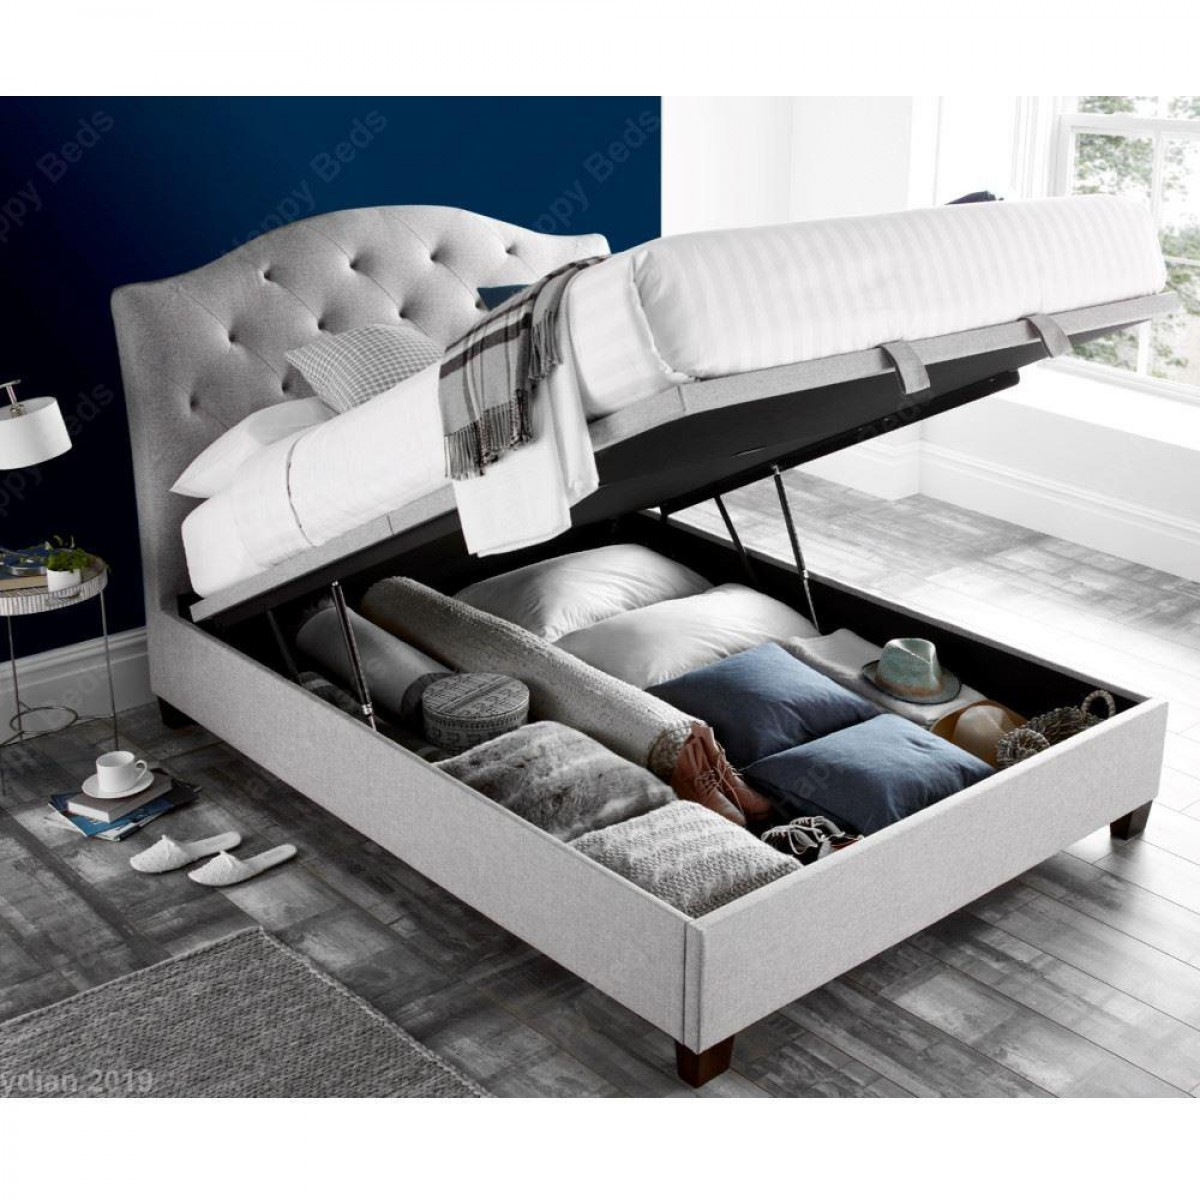 Lindisfarne Stone Grey Fabric Ottoman Storage Bed